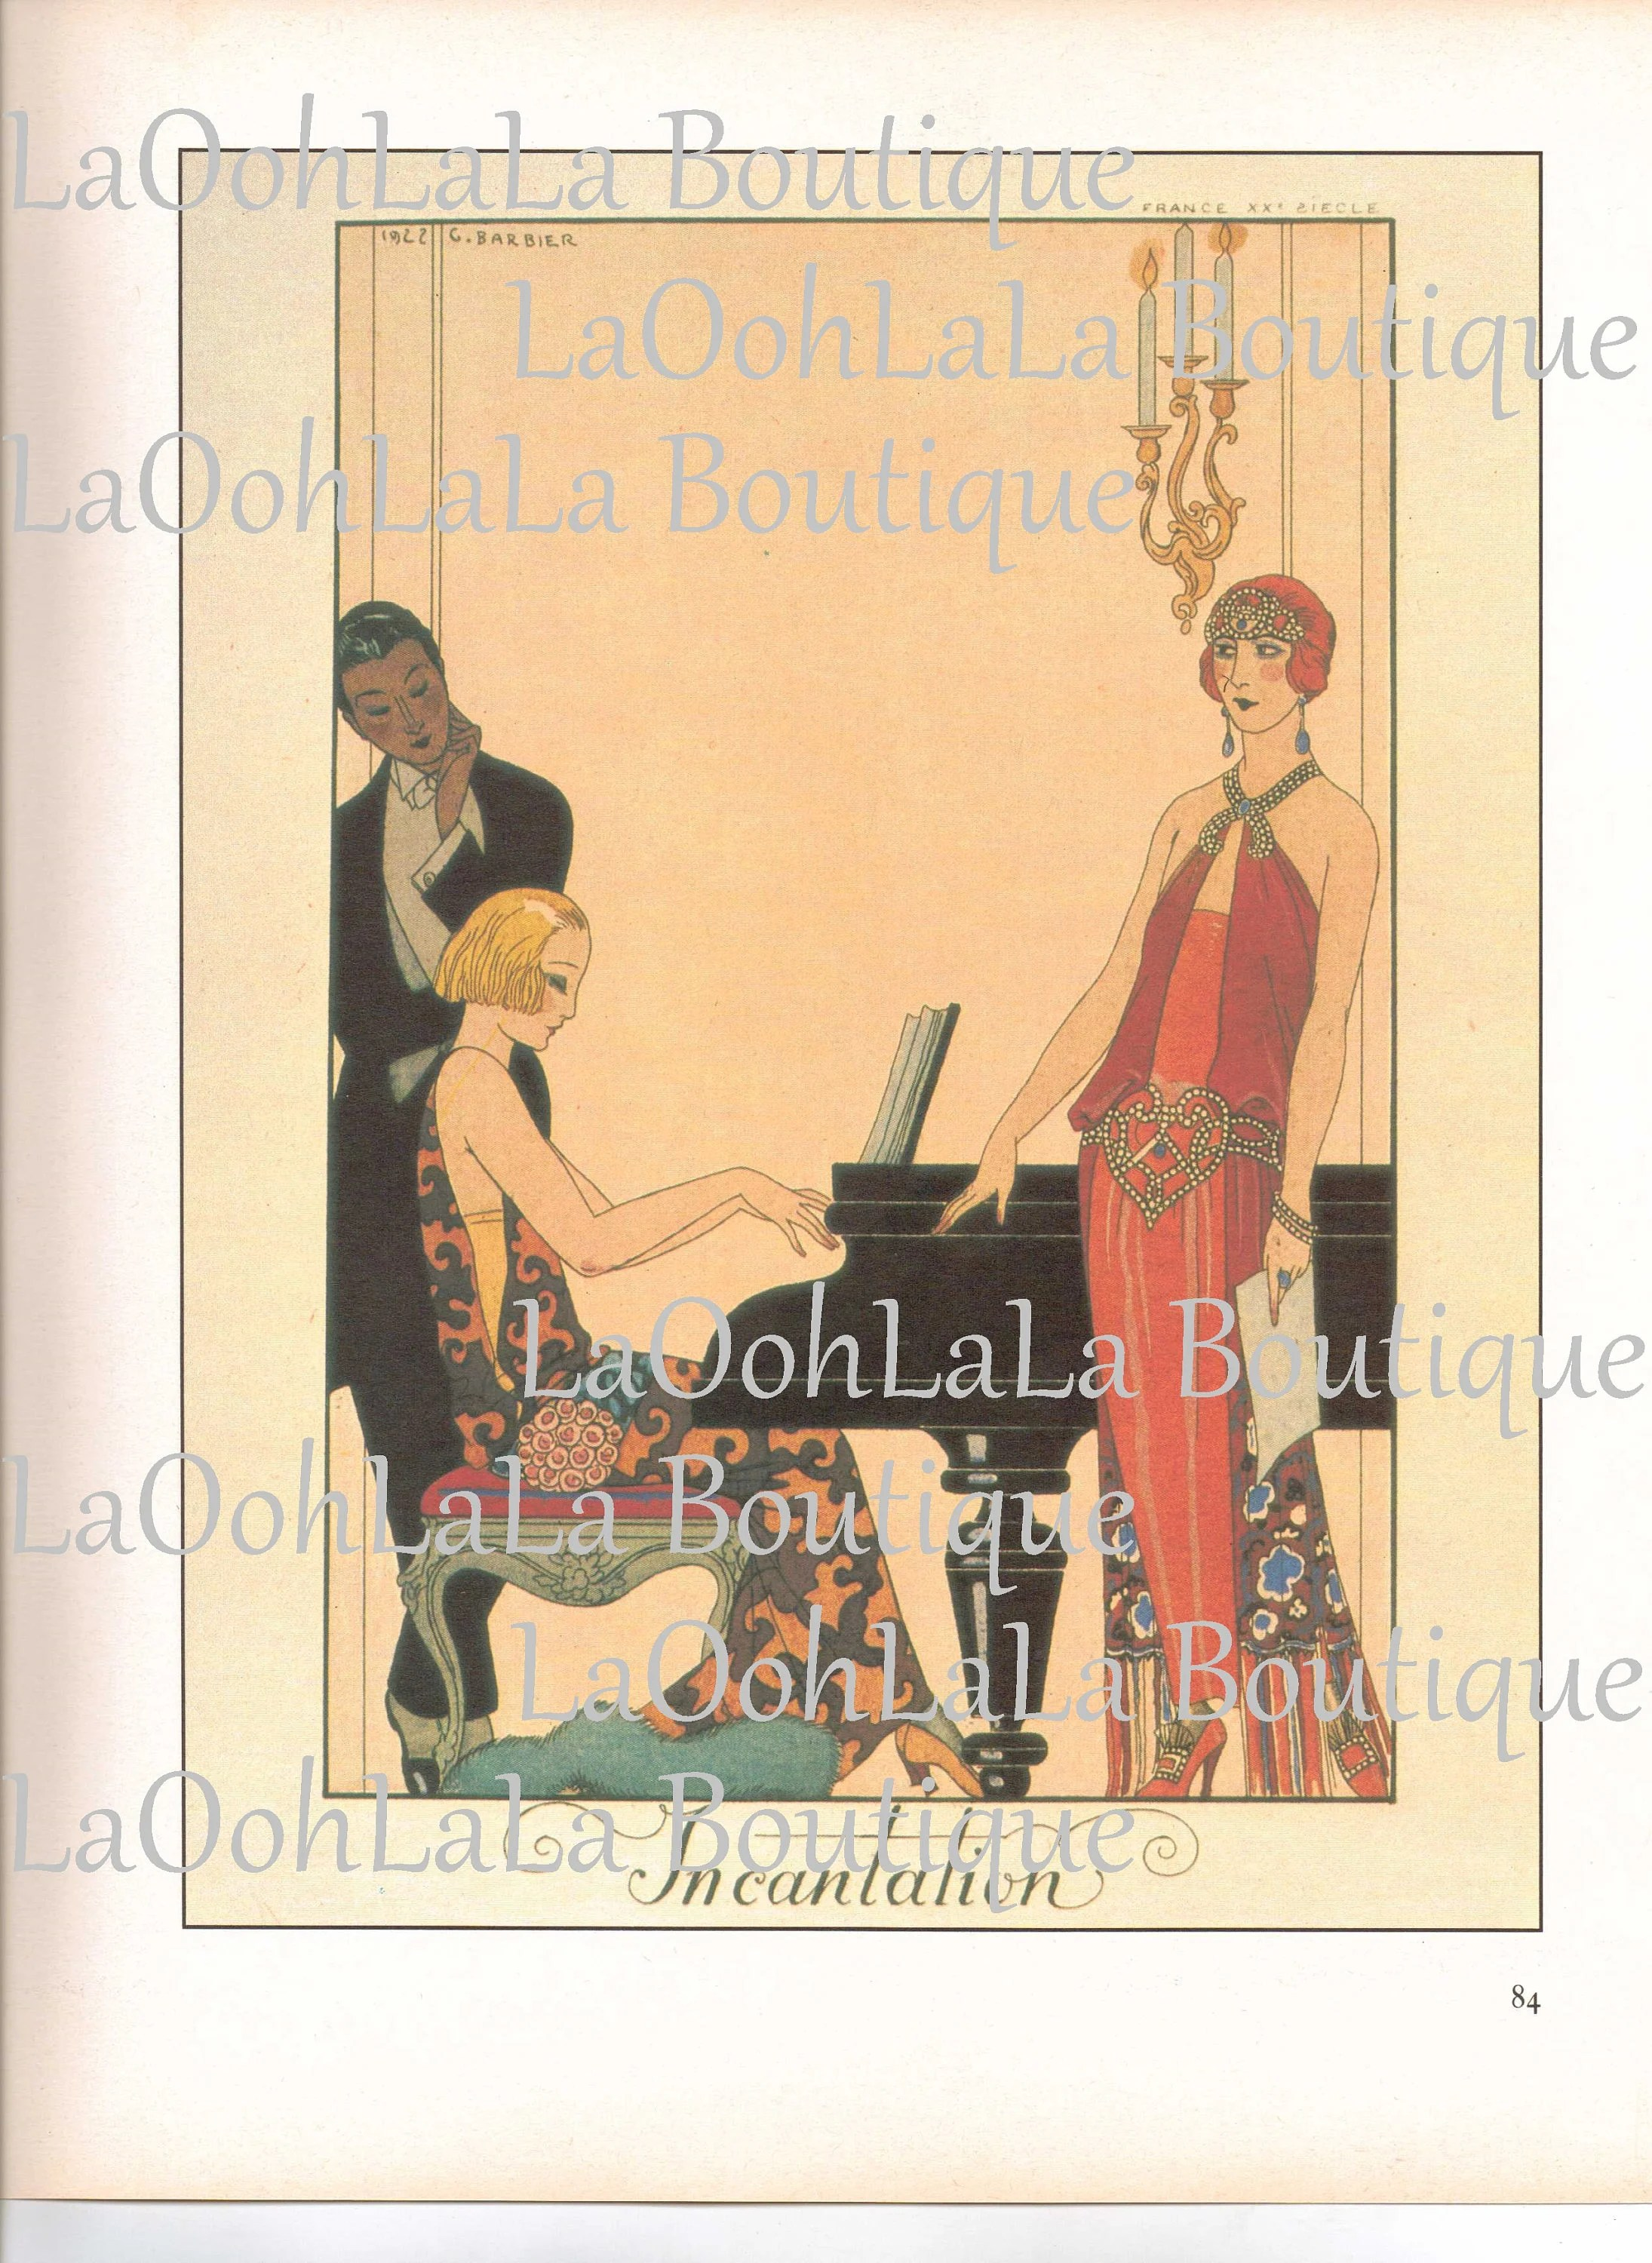 Boutique Art Et Decoration 1923 Gatsby Incantation Falbalas Et Fanfreluches George Barbier Art Deco Pianist Piano Music 20s Flapper Fashion Wall Decor Lithograph Print